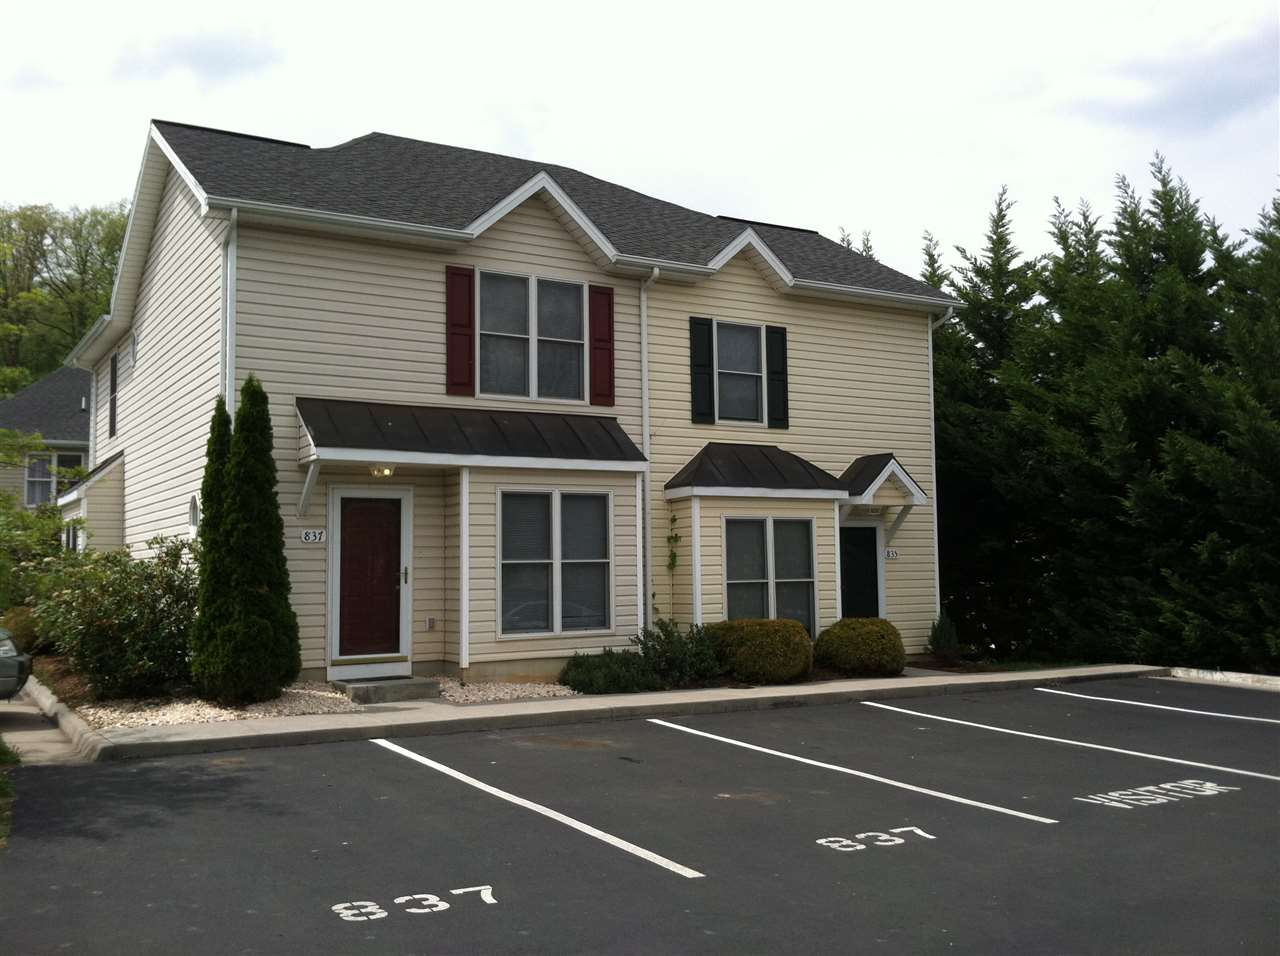 Rental Homes for Rent, ListingId:36298565, location: 837 CAMELOT LN Harrisonburg 22801